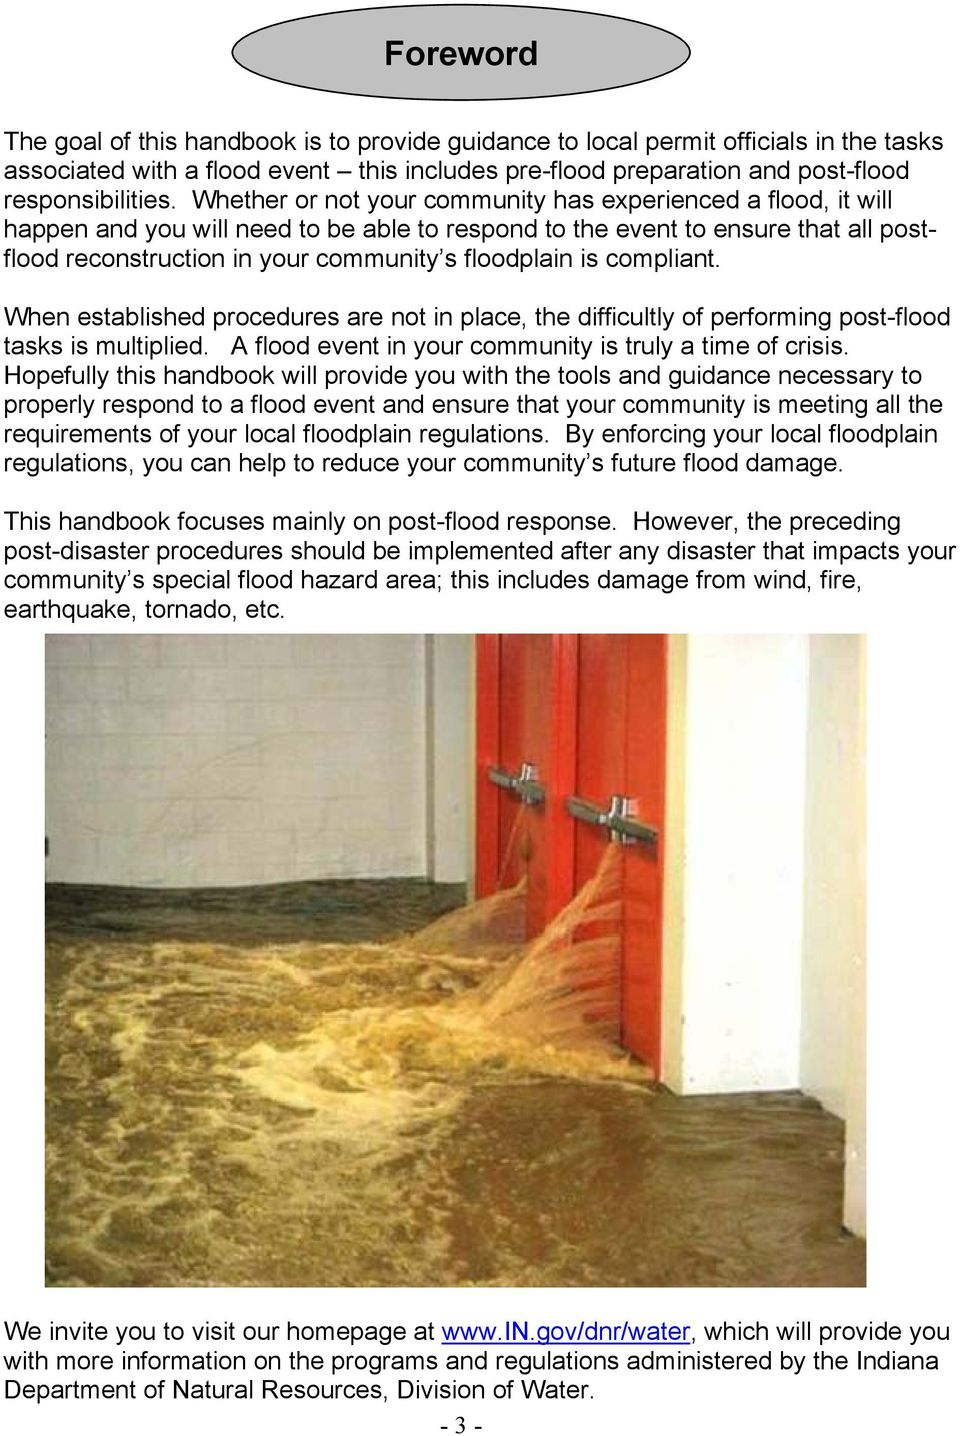 is compliant. When established procedures are not in place, the difficultly of performing post-flood tasks is multiplied. A flood event in your community is truly a time of crisis.